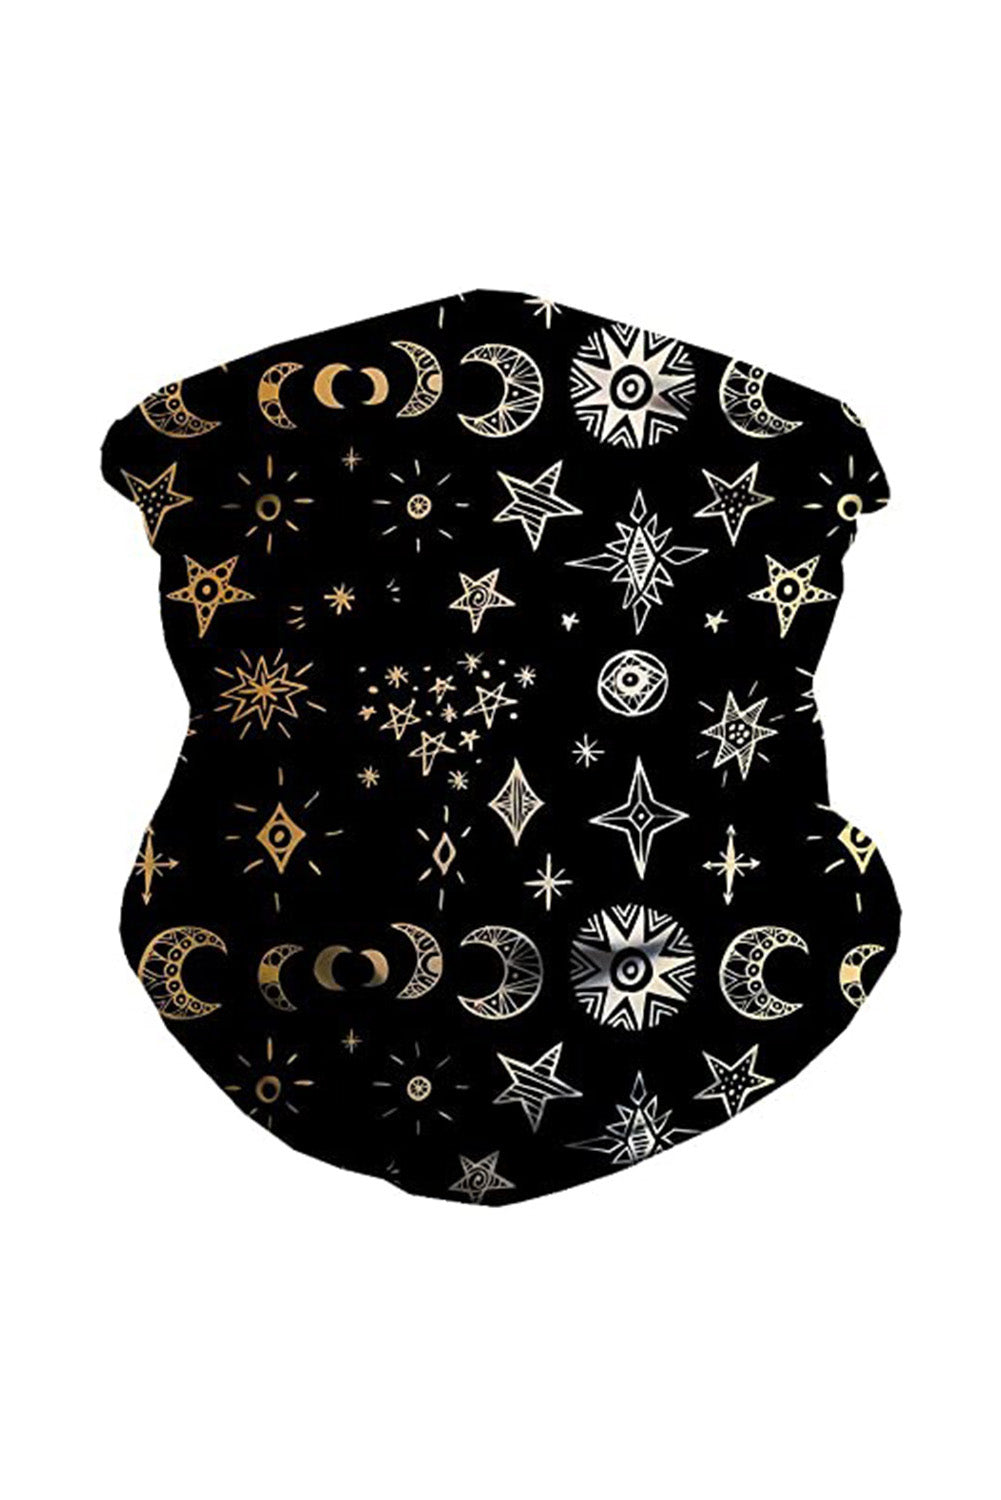 Black Cute Seamless Face Bandana Neck Gaiter